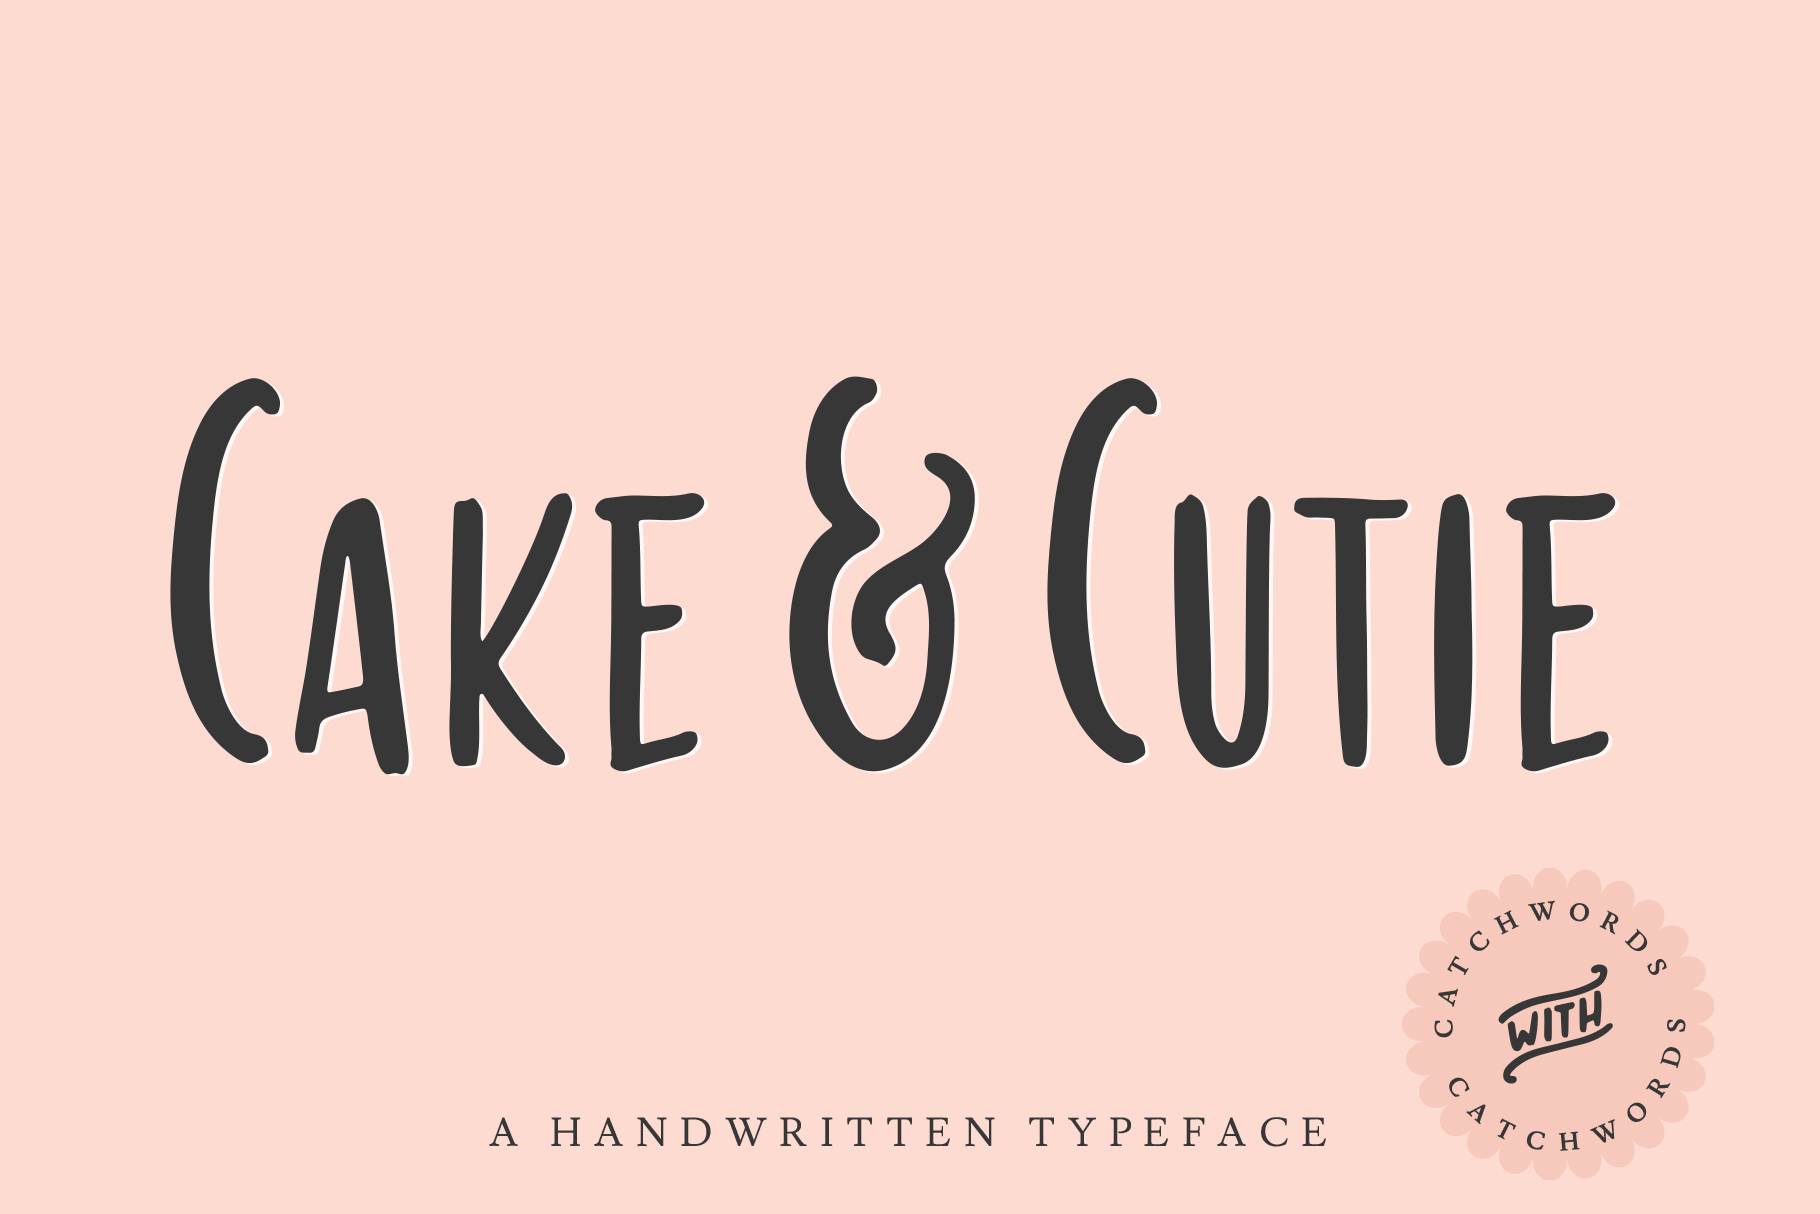 Download Free Cake Cutie Font By Ayca Atalay Creative Fabrica for Cricut Explore, Silhouette and other cutting machines.